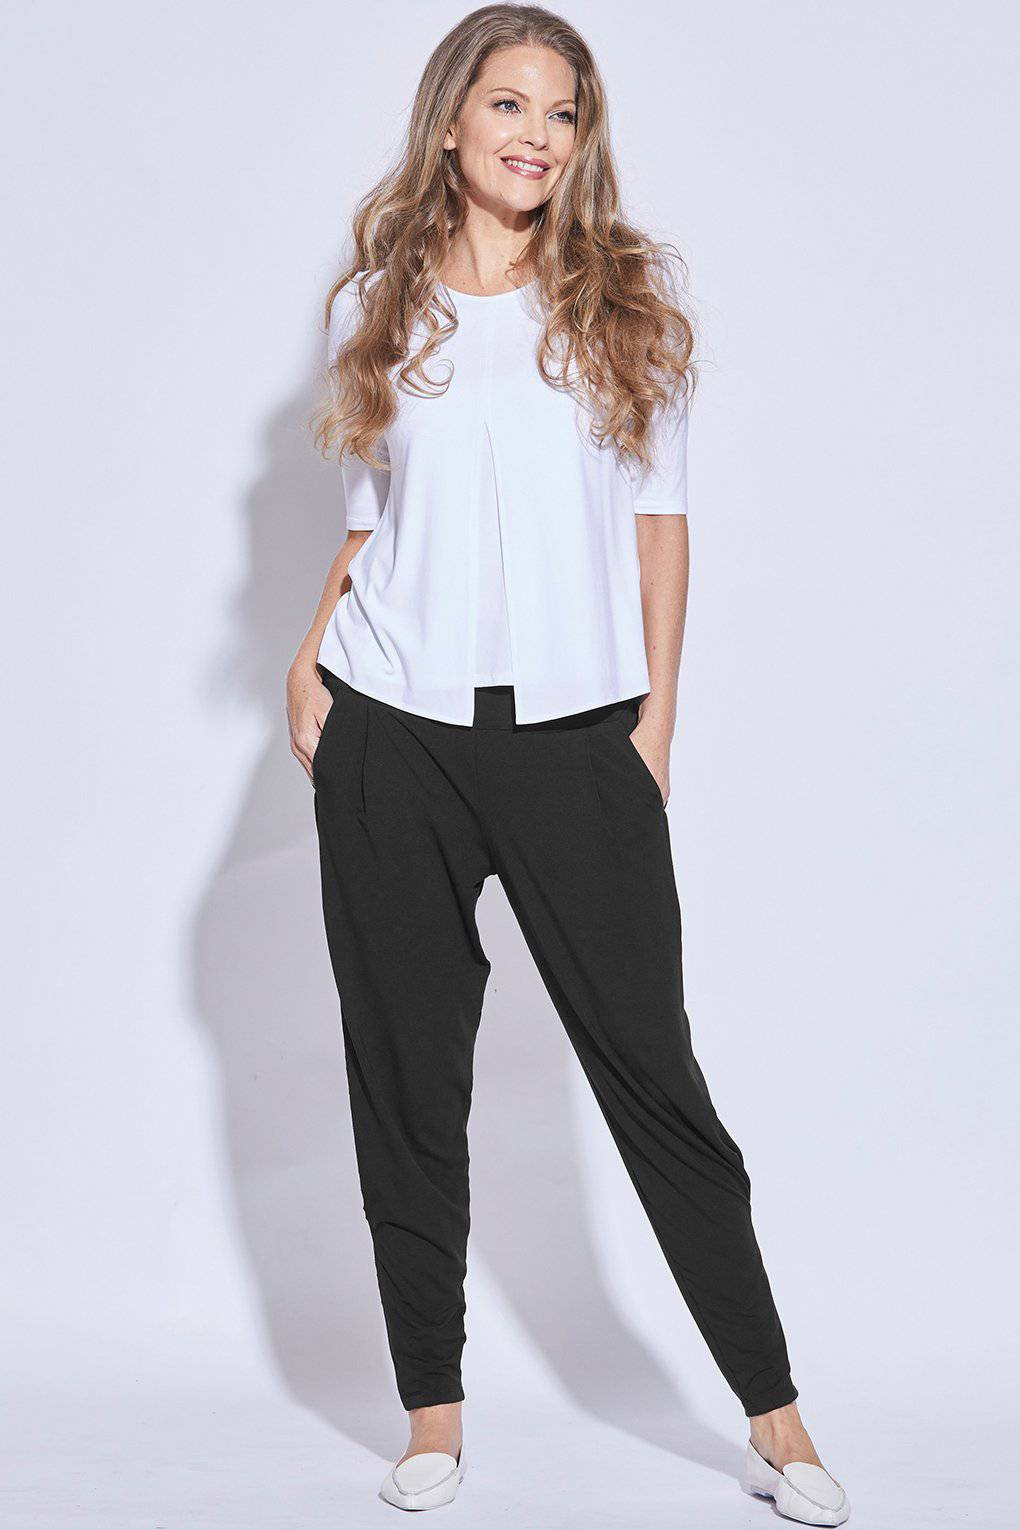 PAULA RYAN ESSENTIALS Ankle Pleat Basque Pant - MicroModal - Pant - Paula Ryan Essentials - Paula Ryan